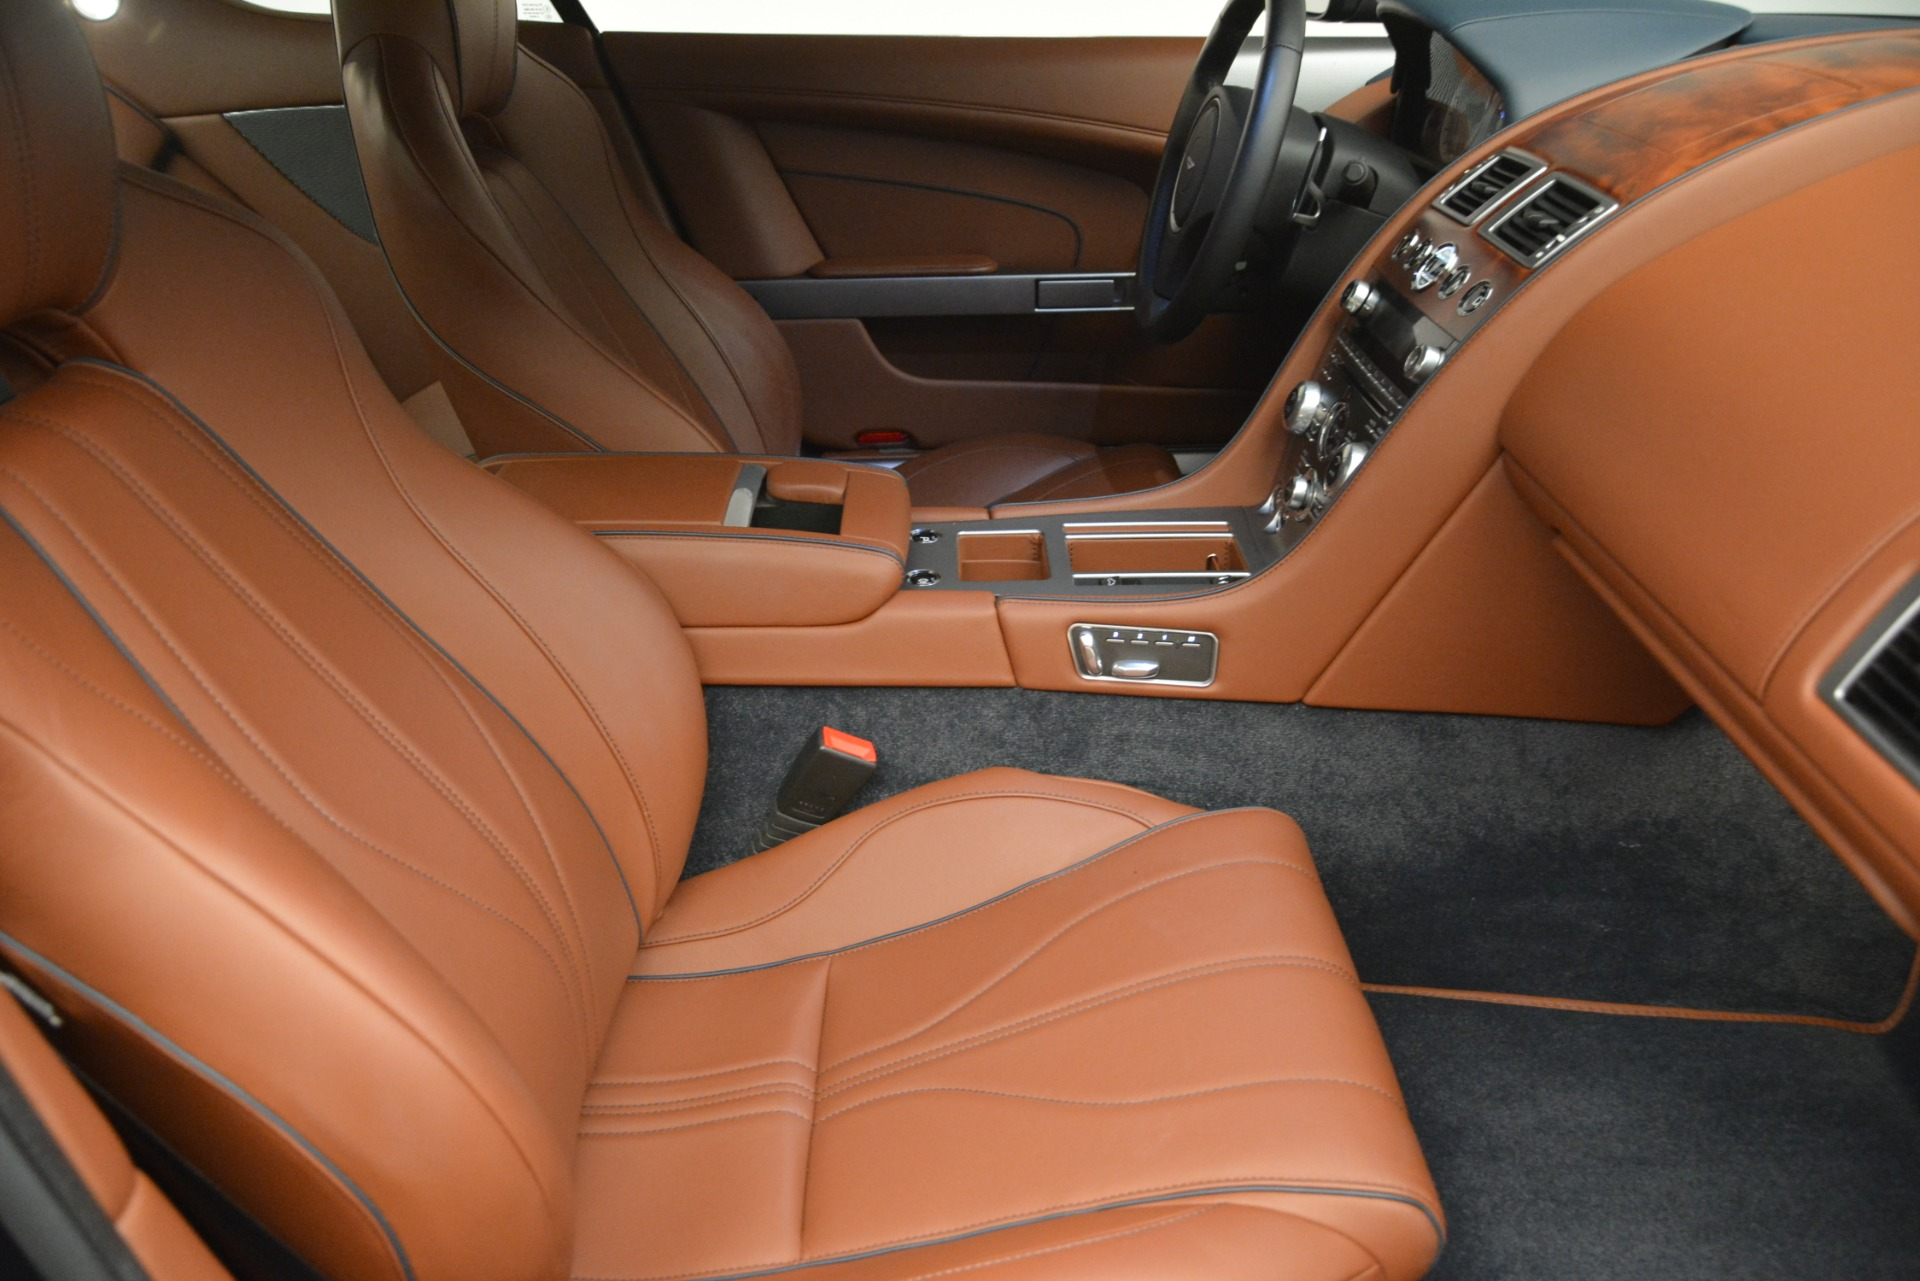 Used 2014 Aston Martin DB9 Coupe For Sale In Westport, CT 3010_p21